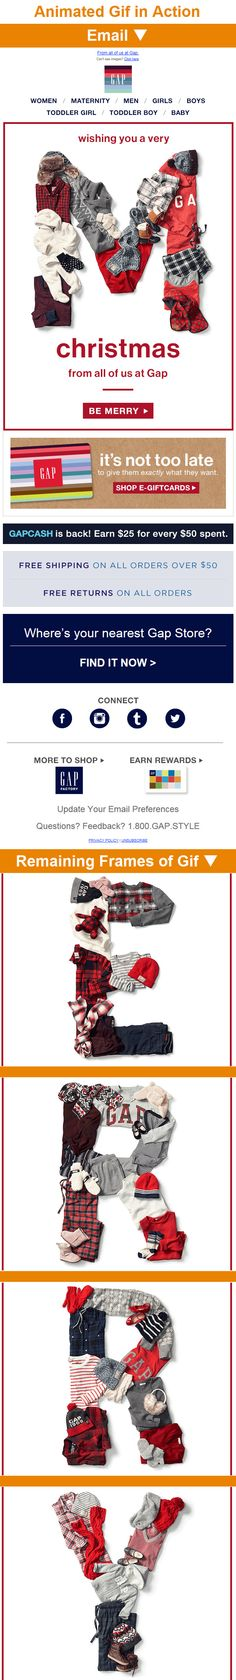 Gap > sent 12/25/14 >> MERRY CHRISTMAS! >> If you're going to send a season's greeting email, make sure that it is well branded, like this one from Gap. It's a simple message that's made more interesting by their use of an animated gif and letters made out of Gap products. Plus, this email promotes e-gift cards as a just-in-time Christmas gift. —Chad White, Lead Research Analyst, Salesforce Marketing Cloud